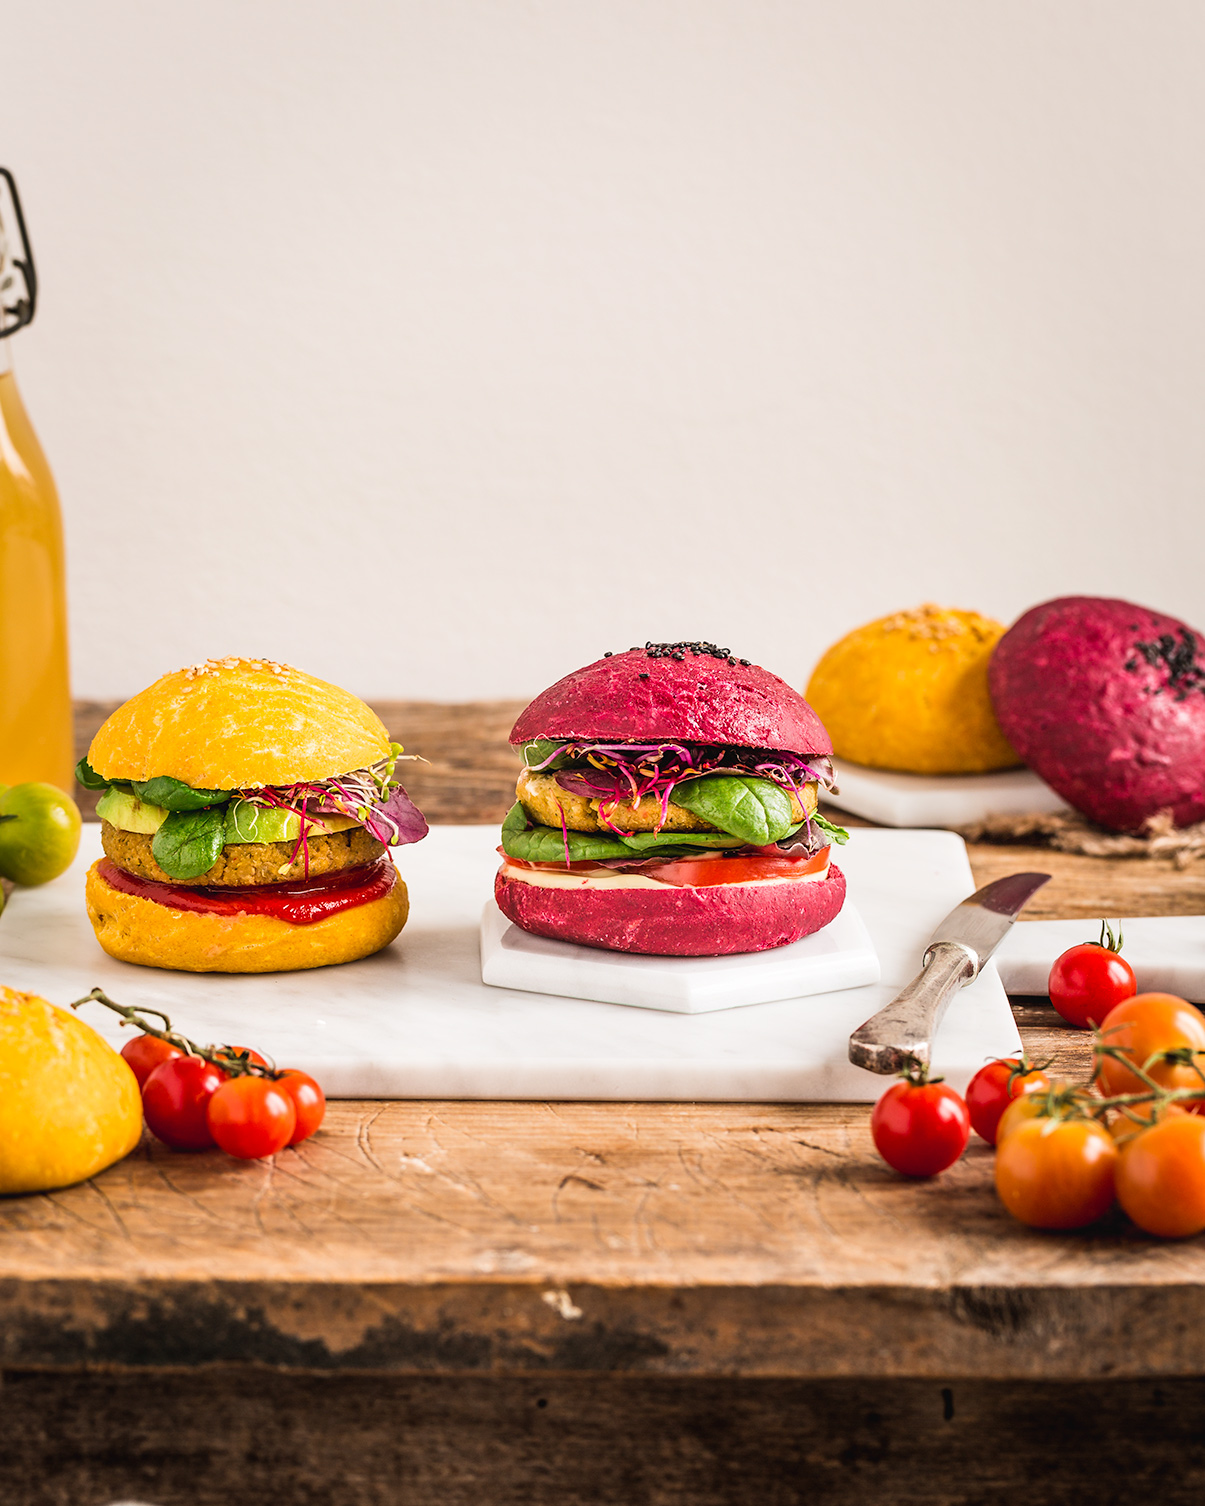 Homemade BEETS and CARROT VEGAN BURGER BUNS recipe PANINI VEGANI per BURGER al FARRO fatti in casa con barbabietola e carota